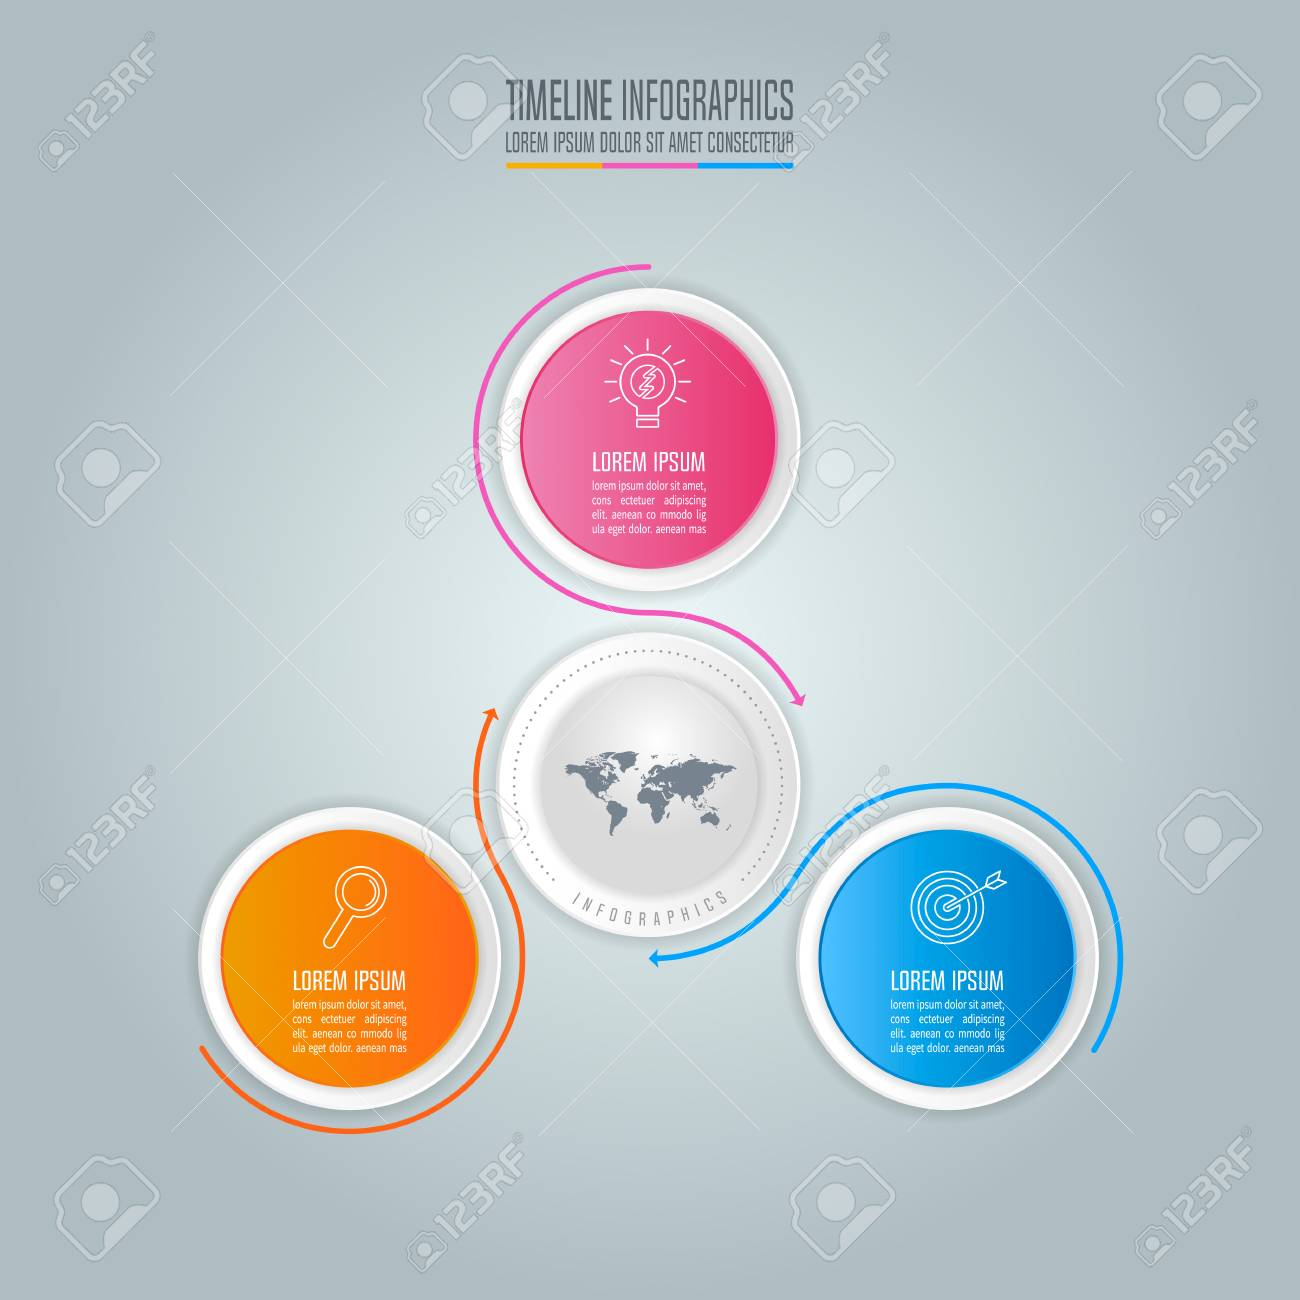 creative concept for infographic. timeline infographic design